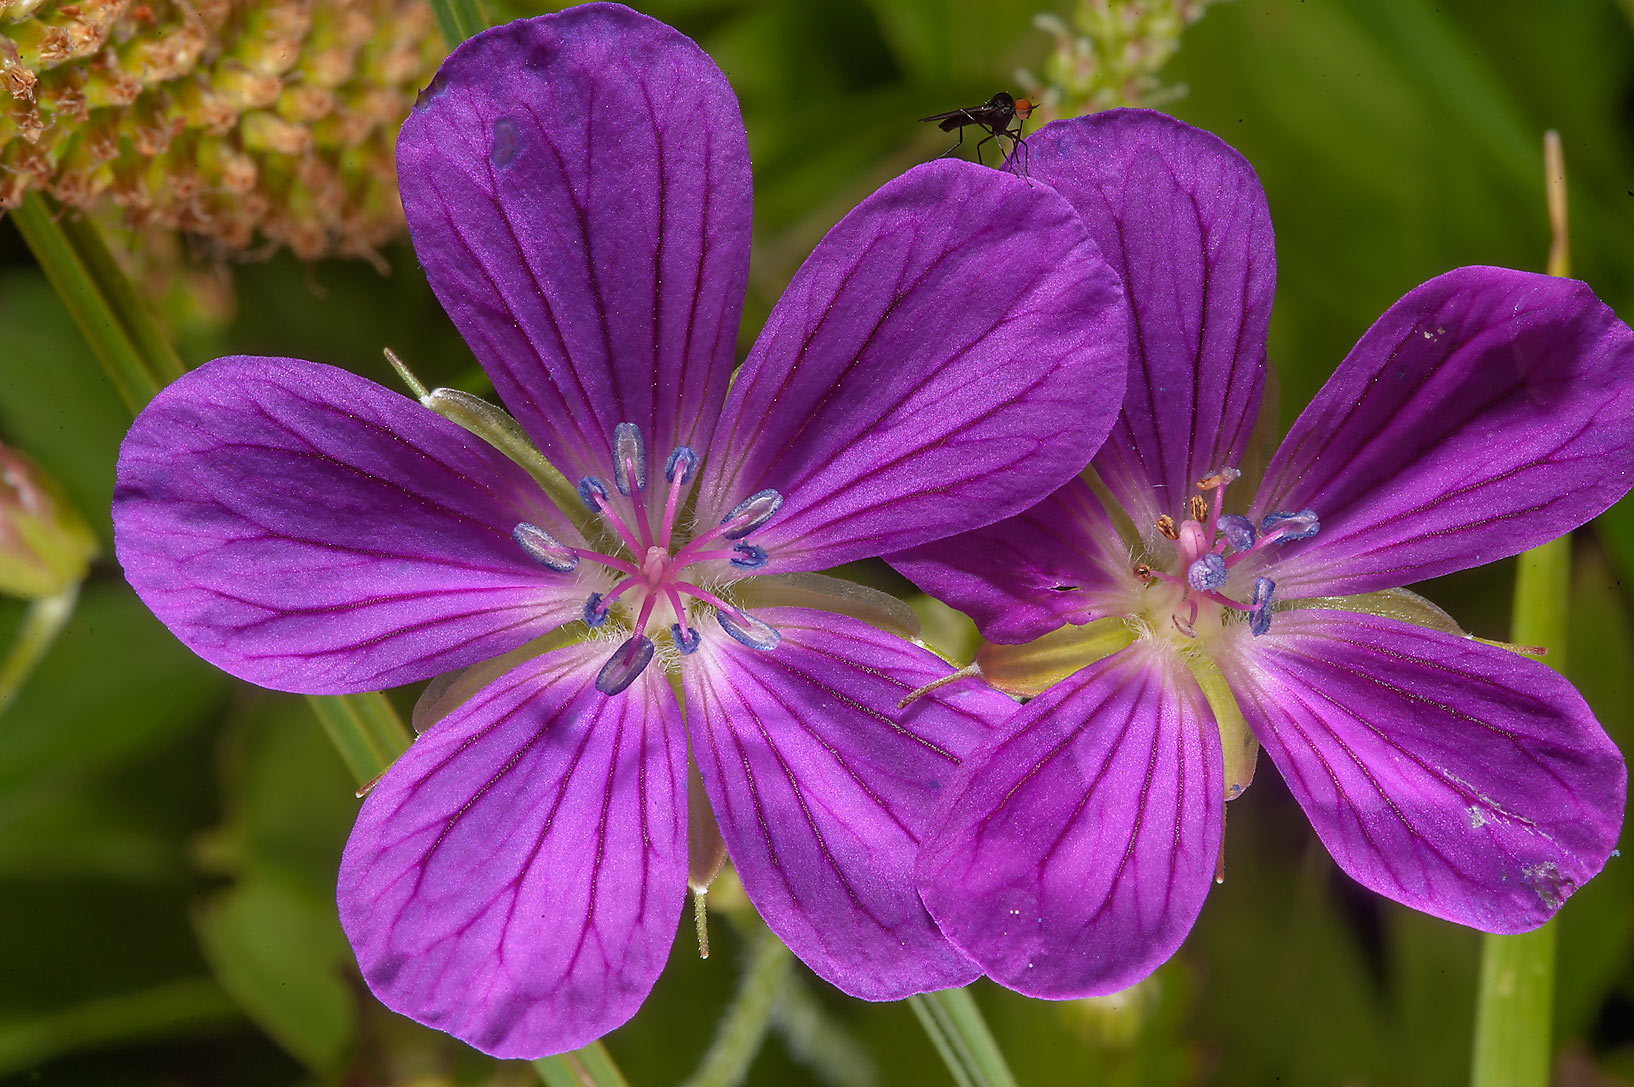 Wood cranesbill (Geranium sylvaticum) in Pavlovsk...a suburb of St.Petersburg, Russia